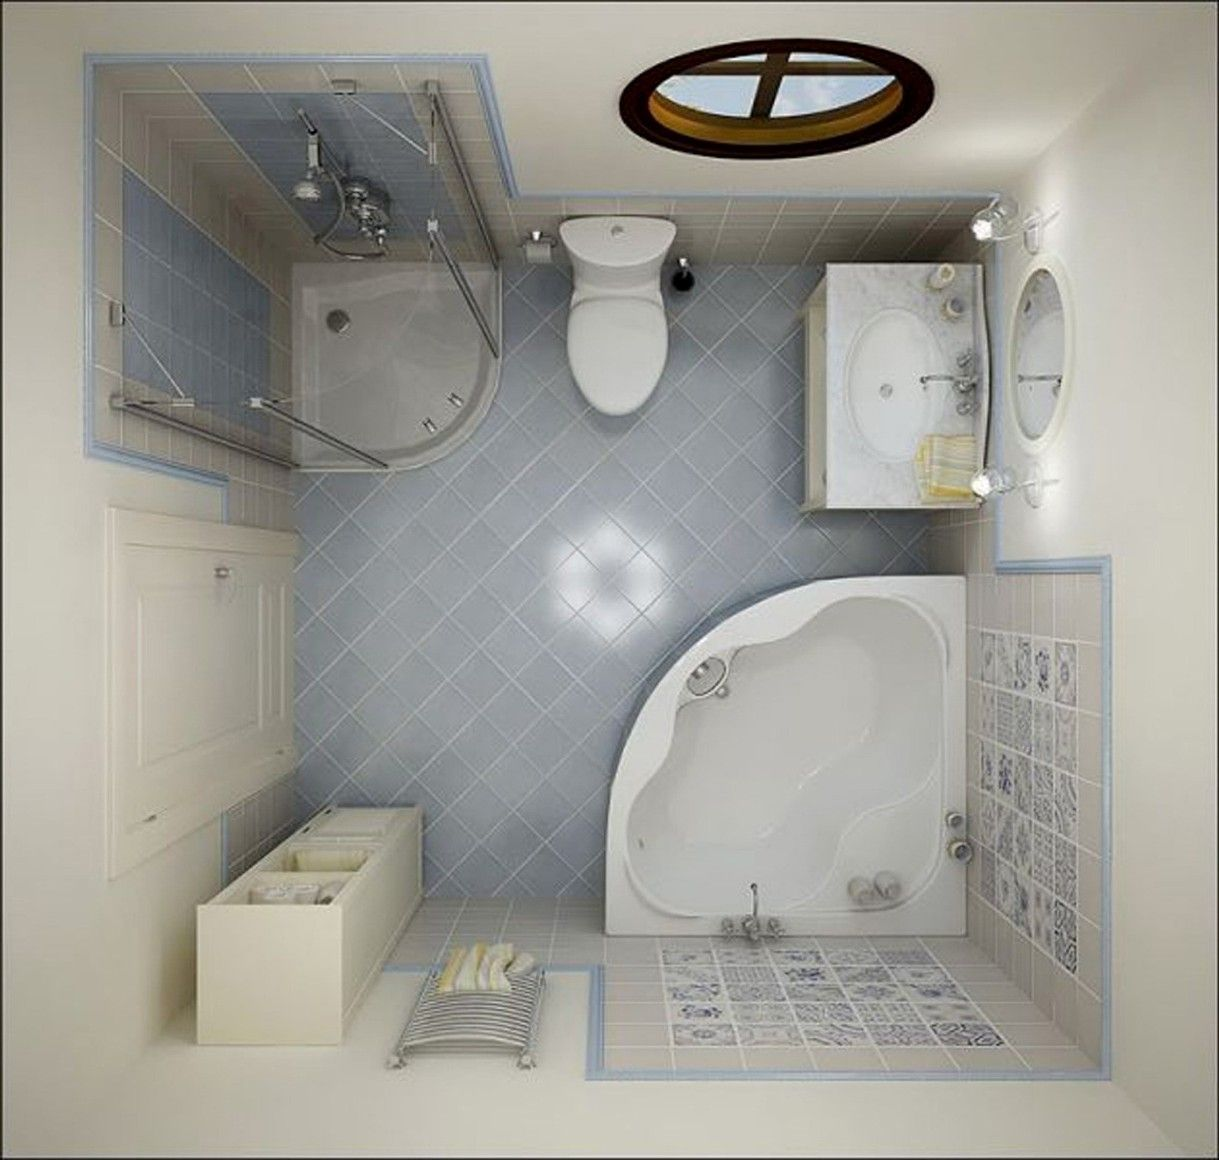 Medium Square Bathroom Design | Medium Size Bathrooms in 2019 ... on small square showers, small square house designs, small mosaic tile bathroom ideas, small square kitchen ideas, small square closet designs, small square bathroom floor plan, small square bathroom models, small square bathtub, small square backyard designs, small bathroom design ideas, small bathroom renovations, small square bathroom sinks, small square tiles, small square bathroom decor, small square home, small square kitchen cabinets, small square office design, small square room design, small bathroom interior design, small square patio designs,